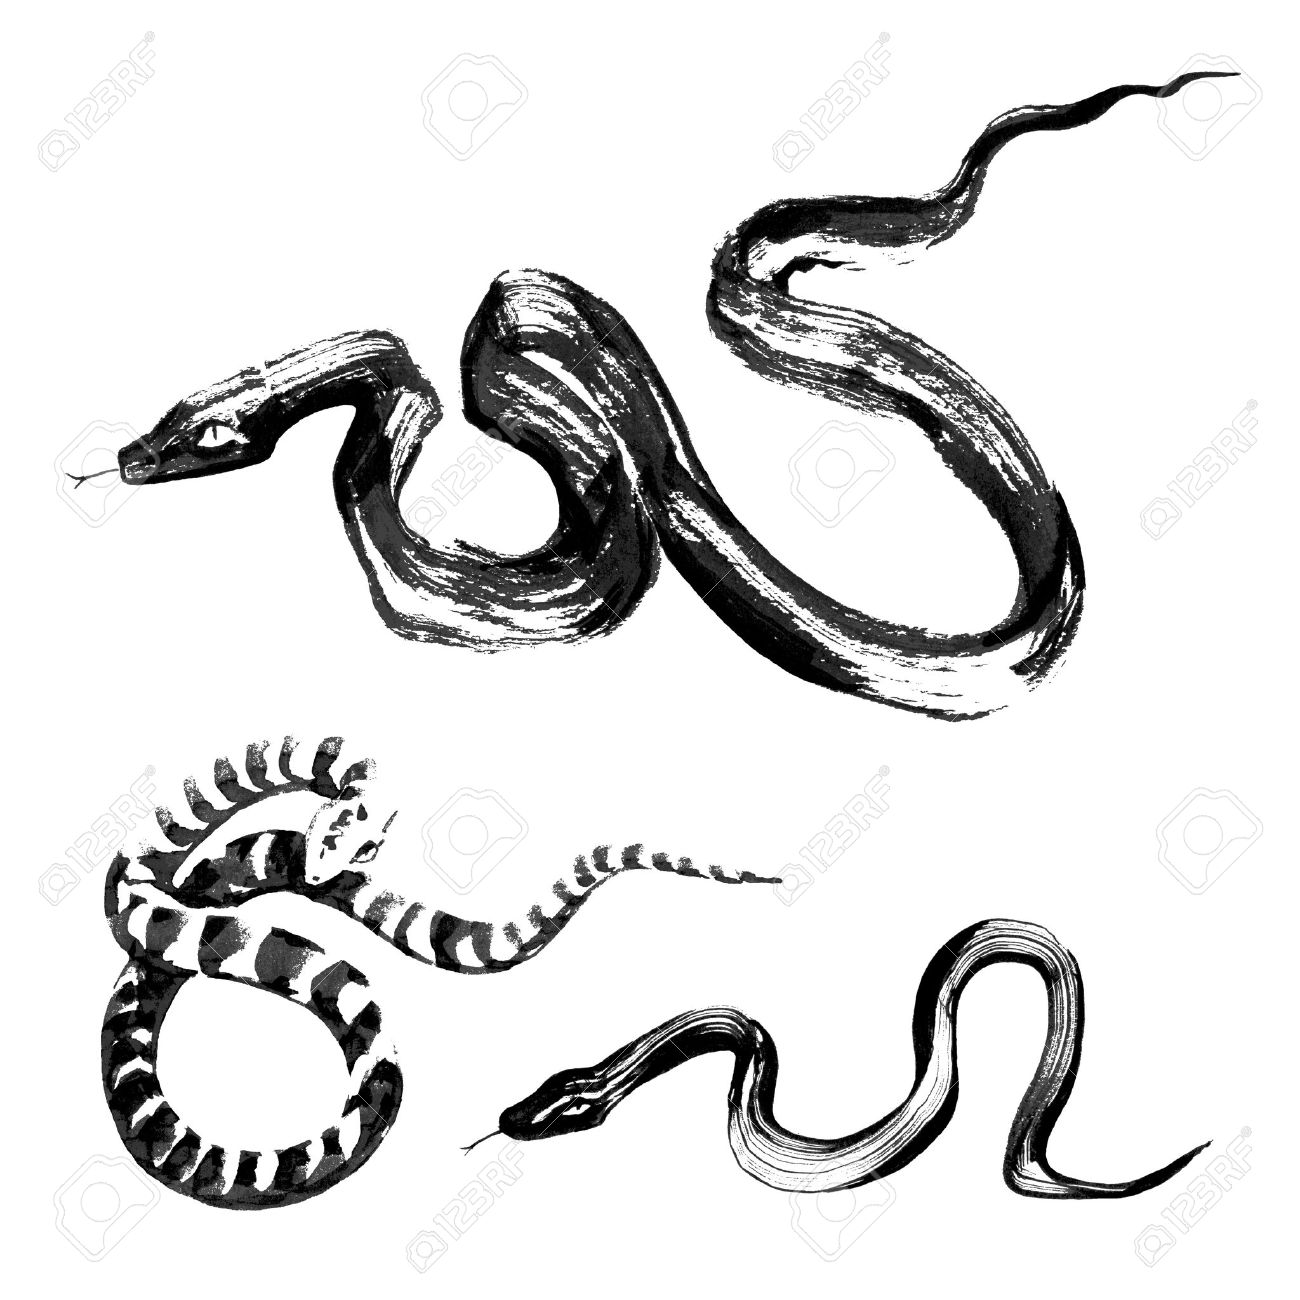 1300x1300 Set Of 3 Snakes In The Style Of Traditional Chinese Ink Painting